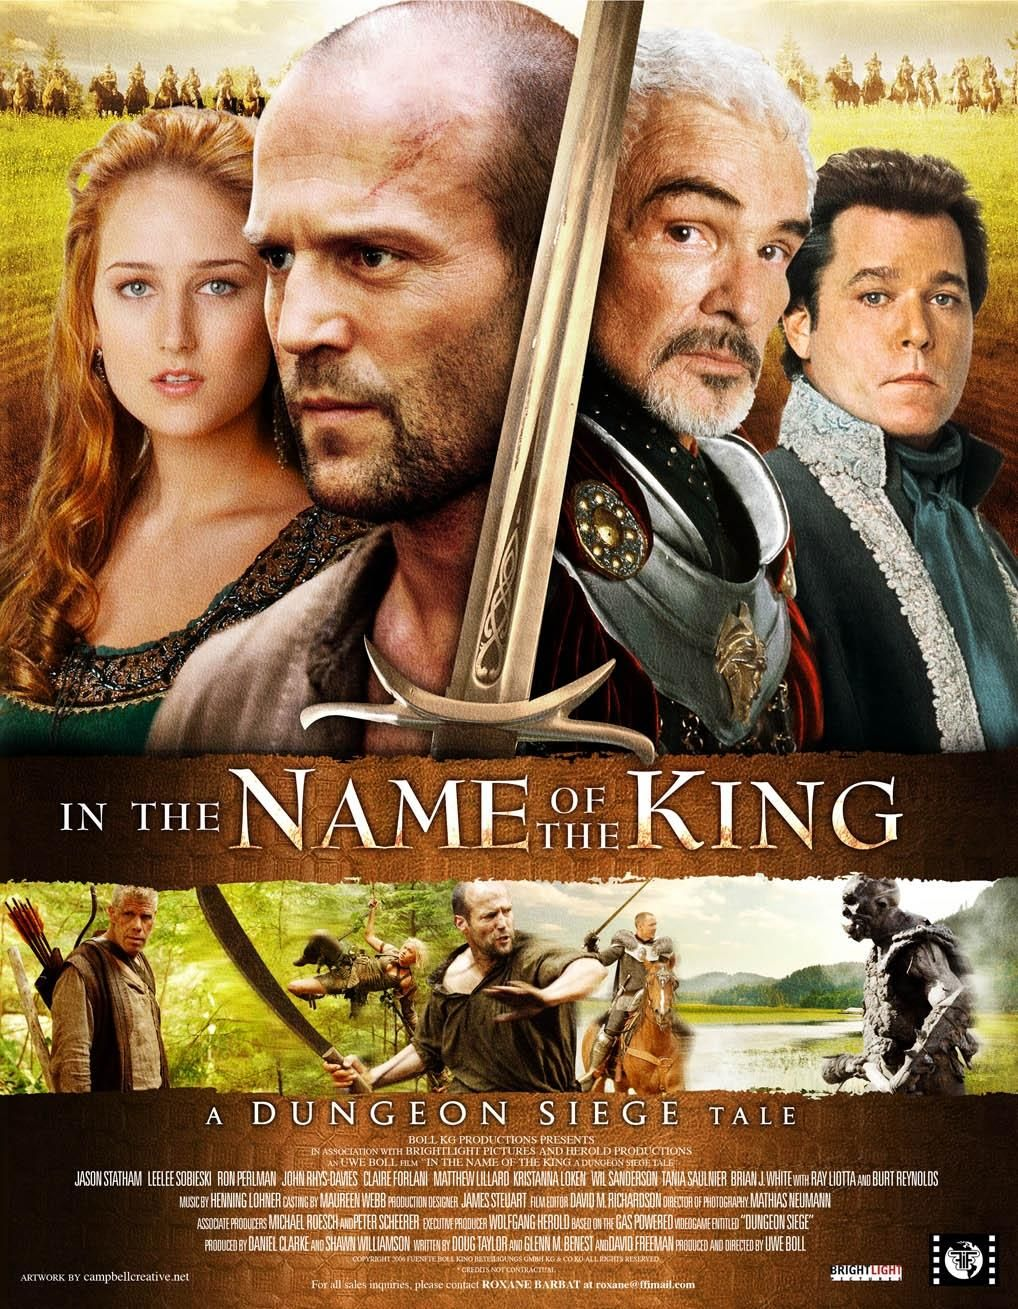 in the name of the king bmfcast132 tax shelter epic